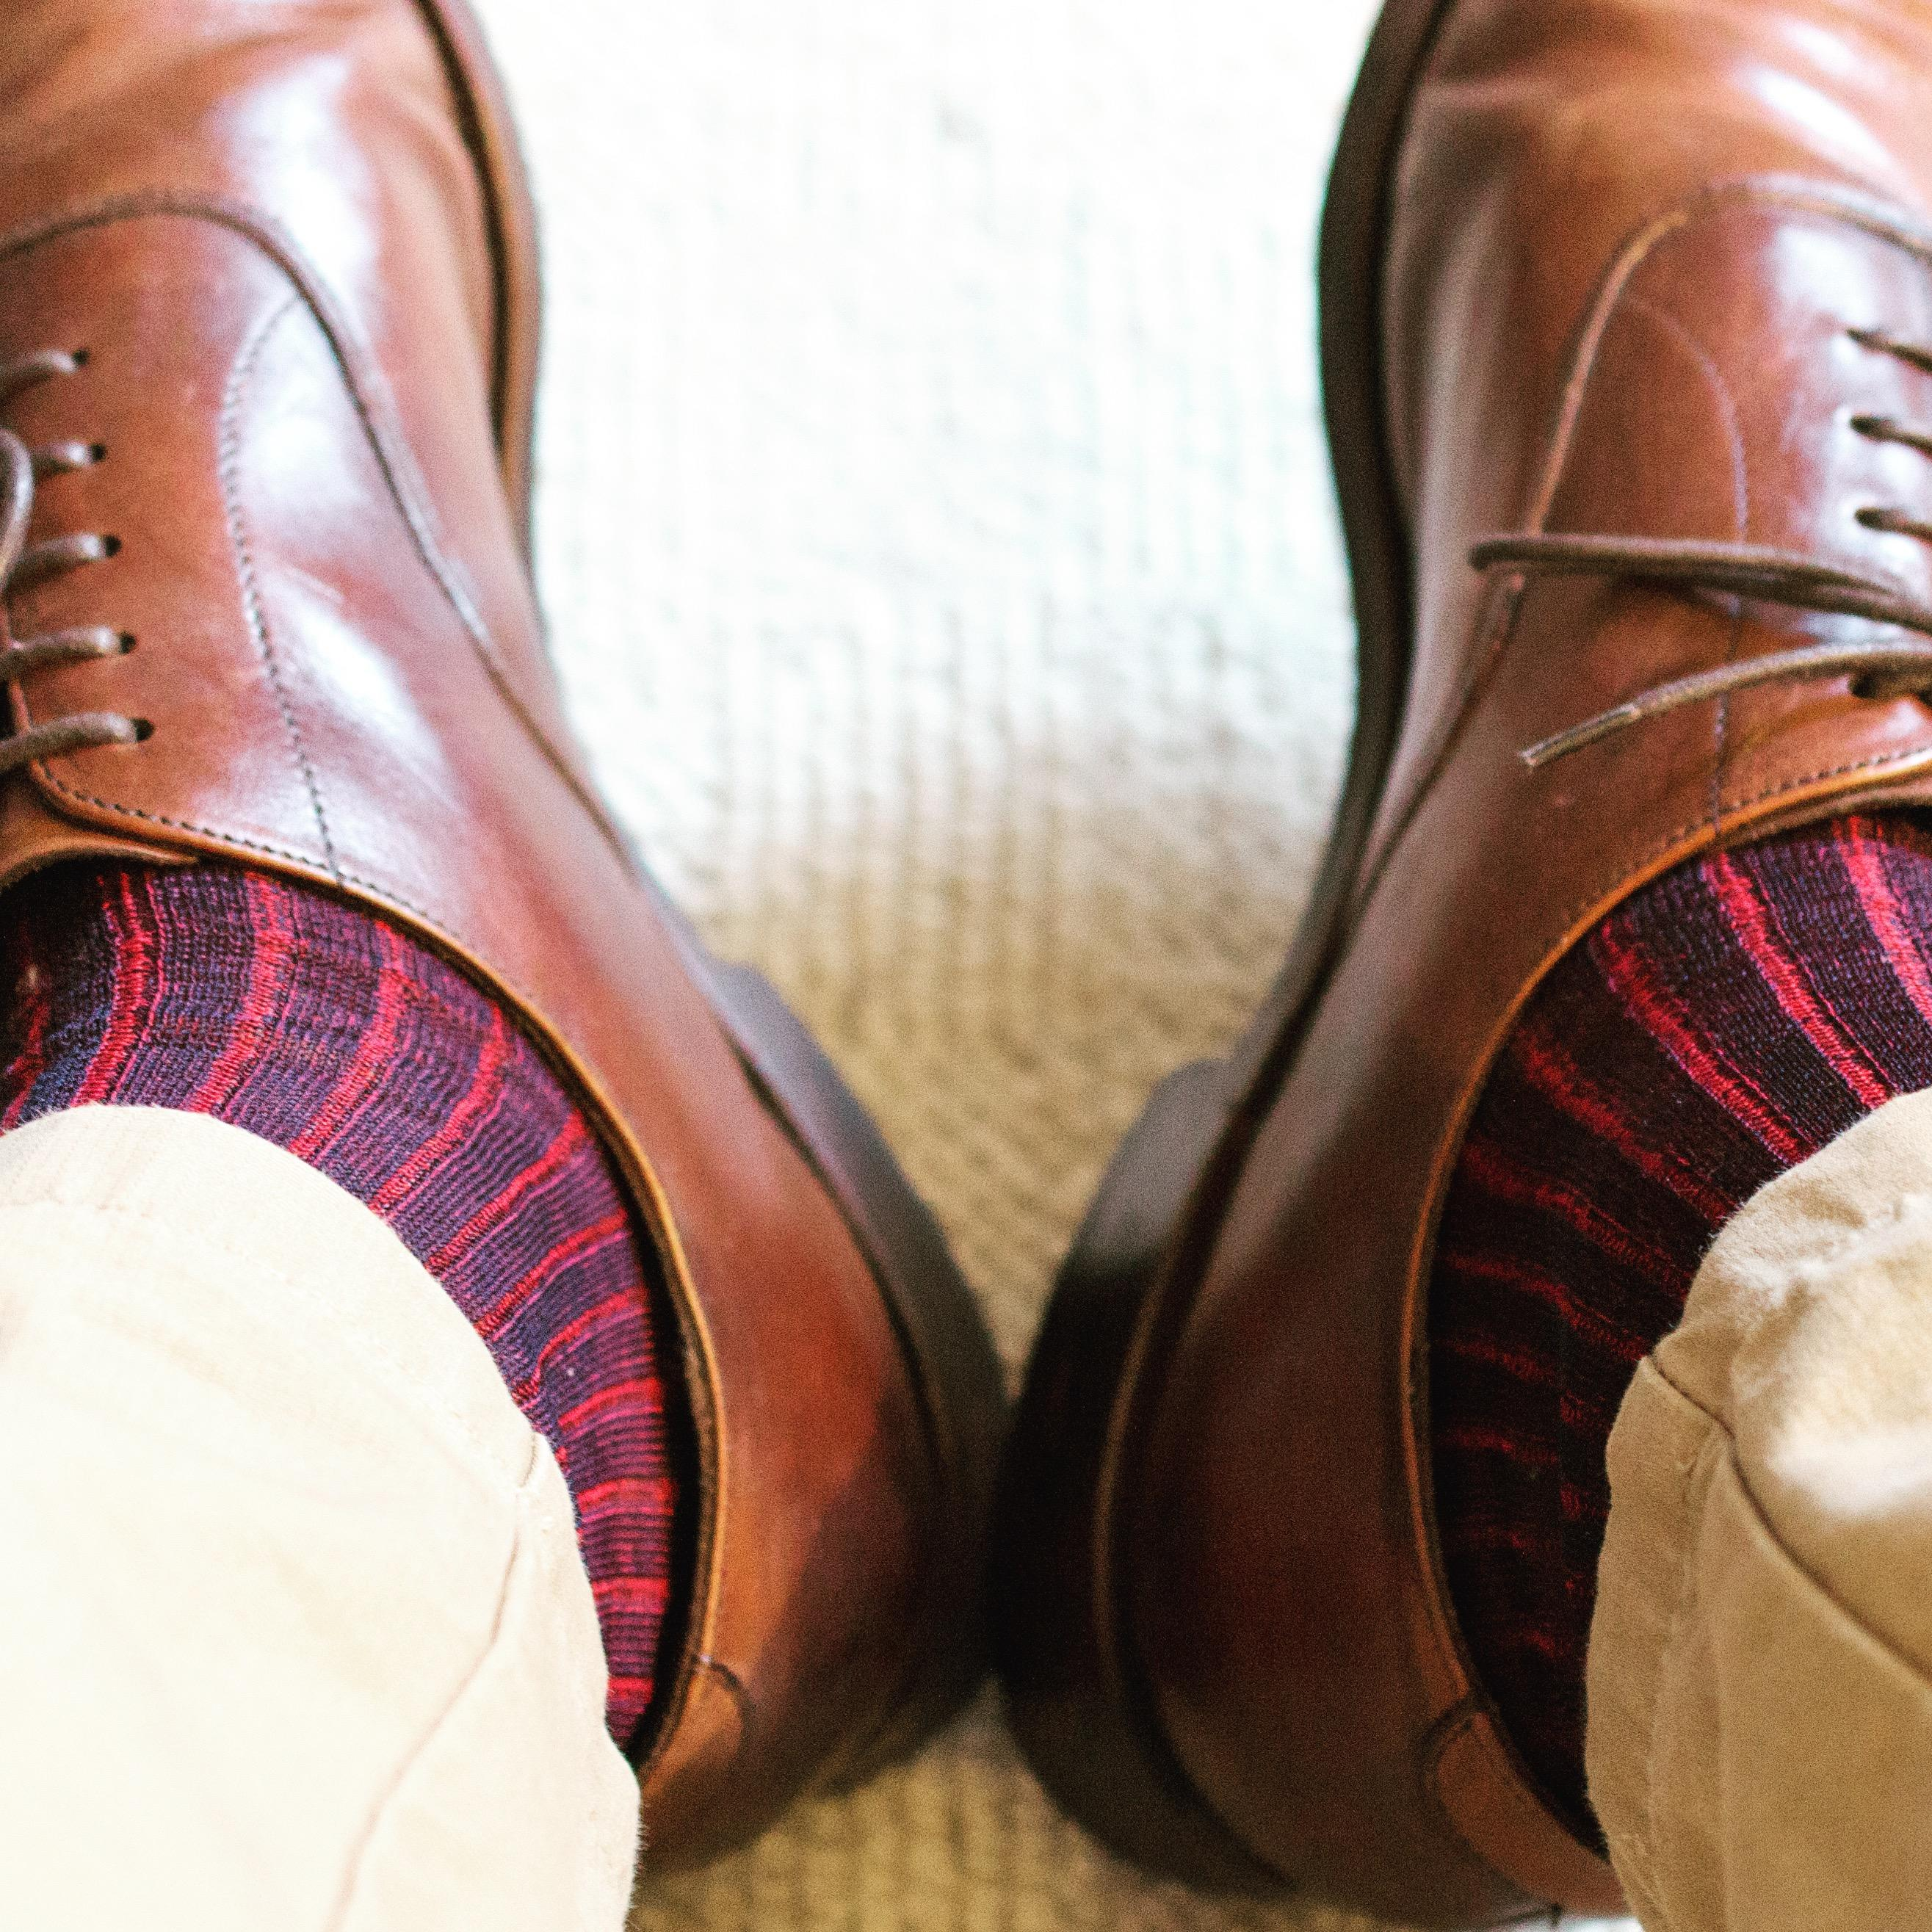 Bresciani socks with brown shoes and cream trousers